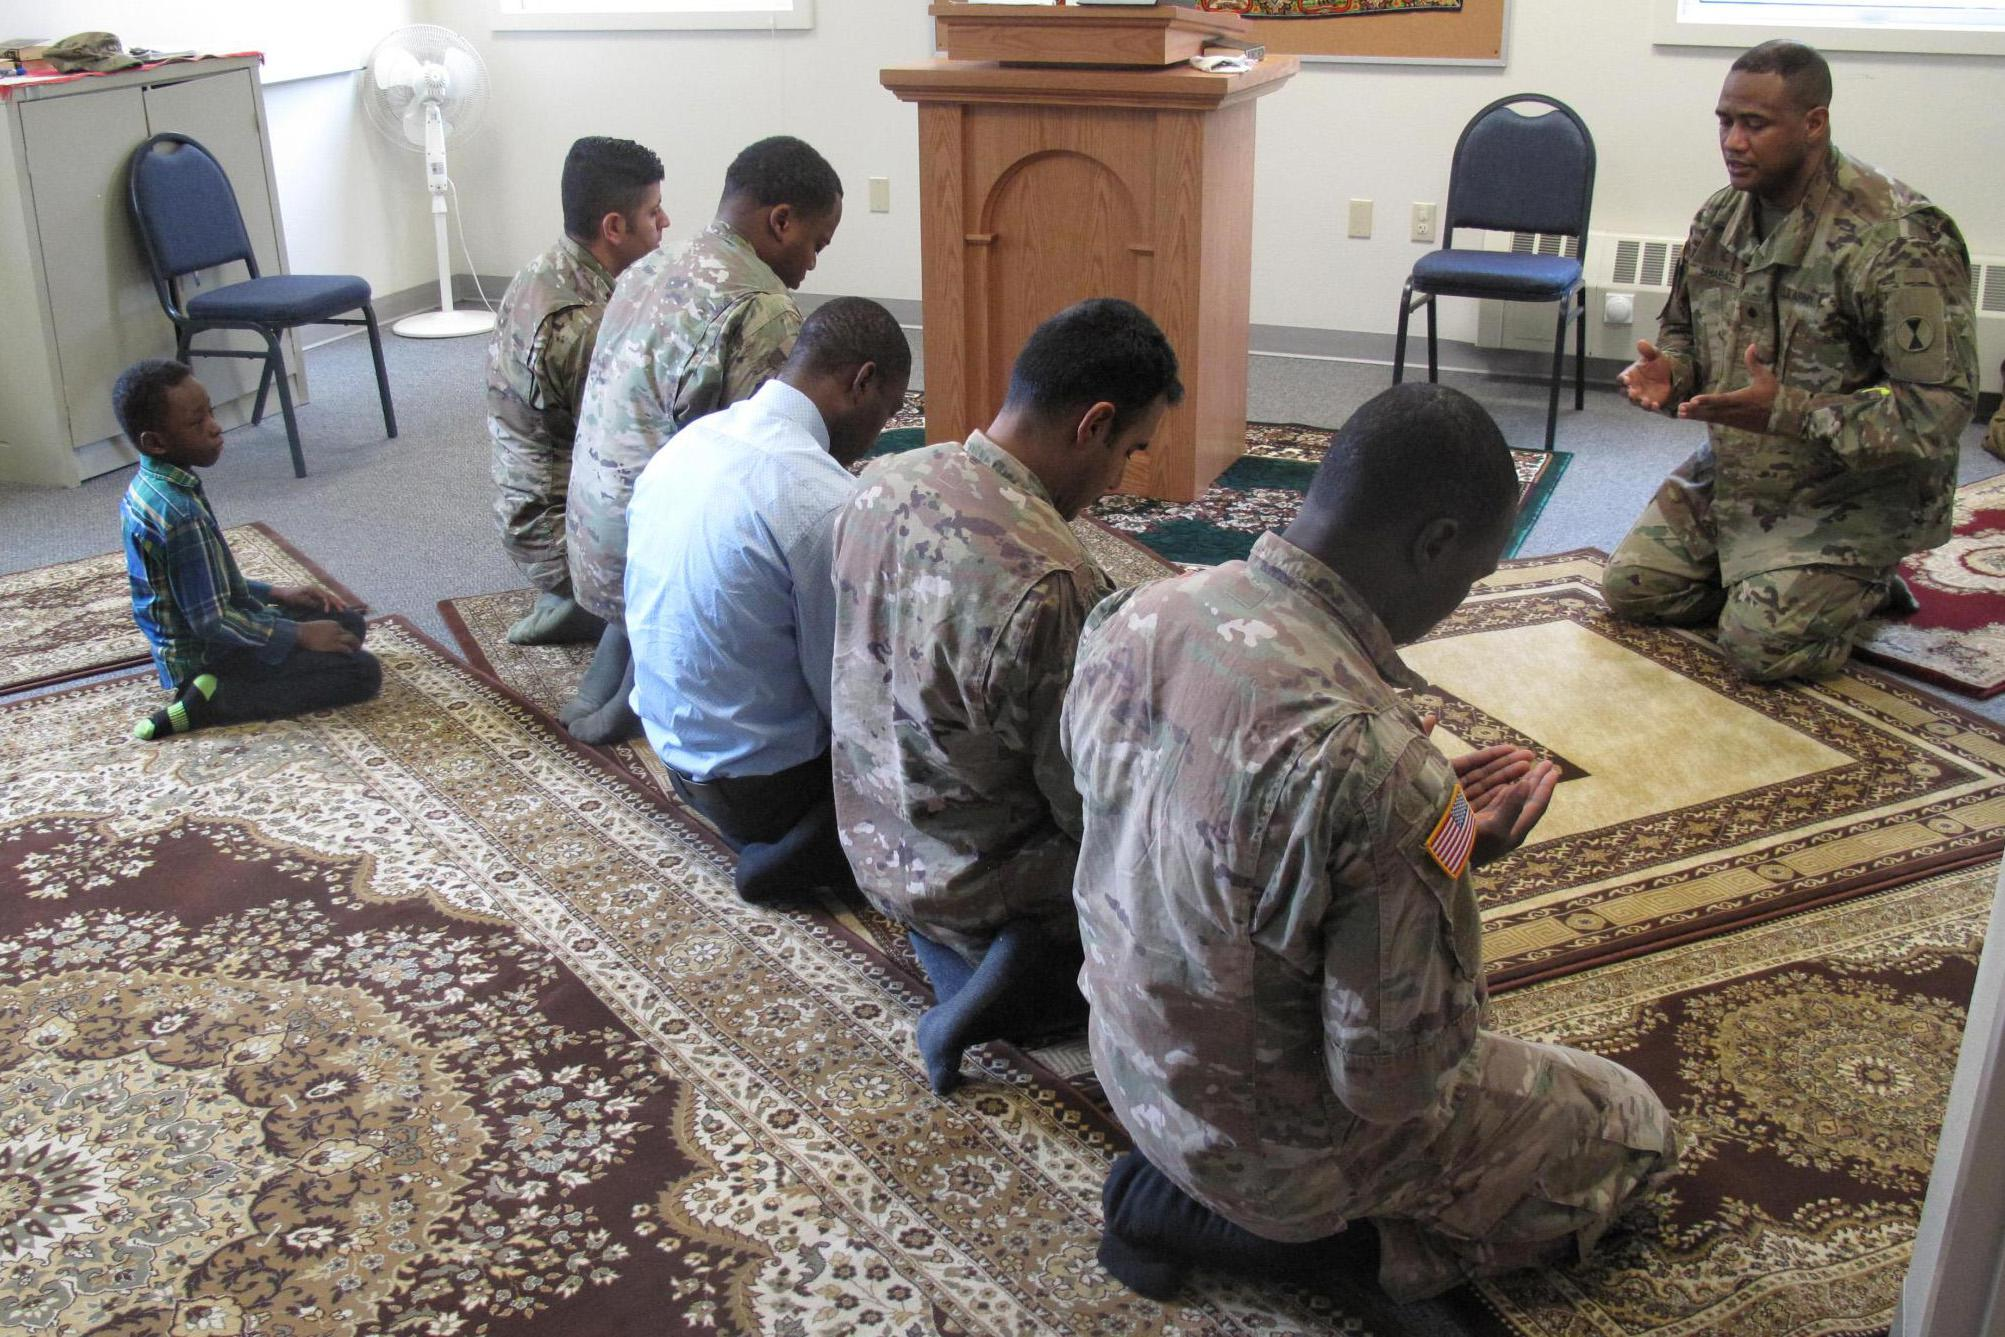 Caption: Lt. Col. Khallid Shabazz leads Friday prayer for the Muslim community of Joint Base Lewis-McChord. Shabazz is the Army's first division-level Muslim chaplain., Credit: Anna Boiko-Weyrauch / American Homefront